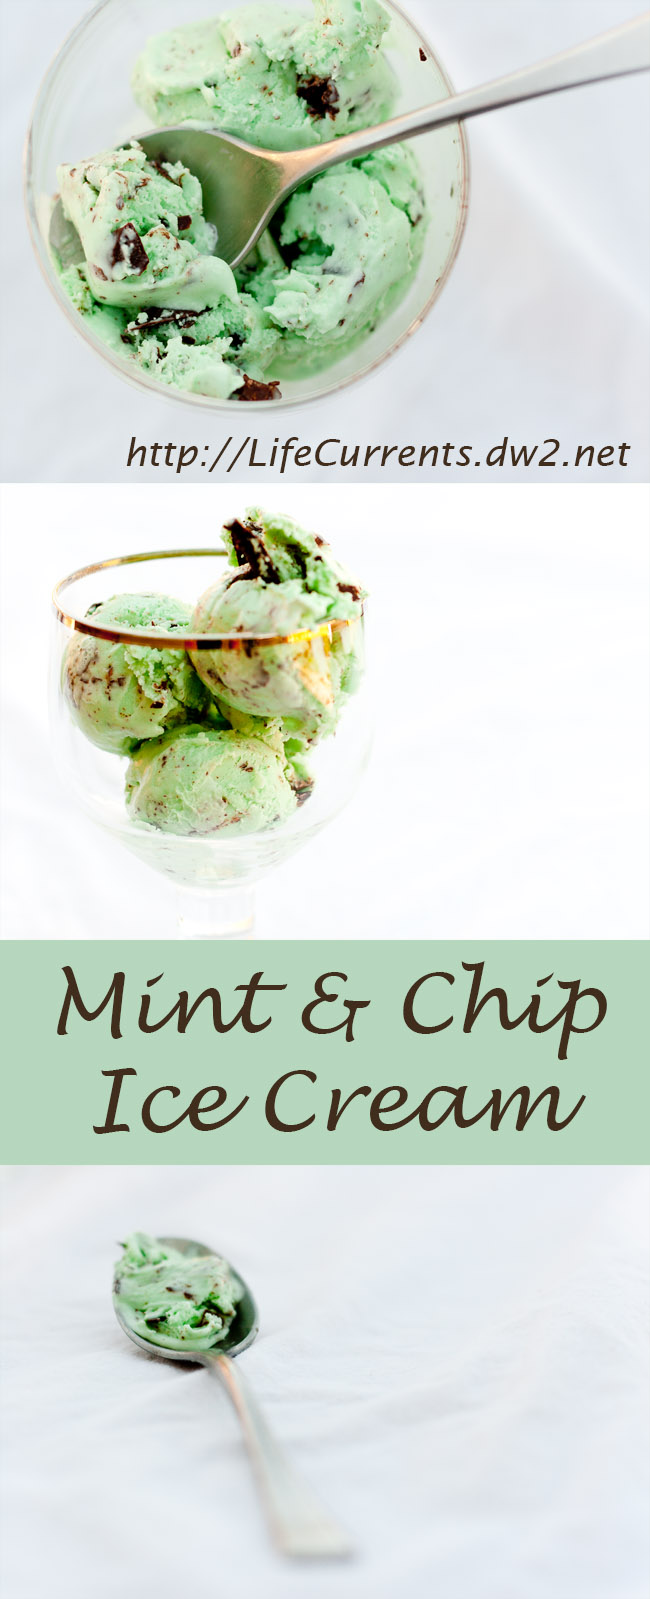 This is the classic mint chocolate chip ice cream. Sweet. Simple. Minty, but not too much overpowering mint